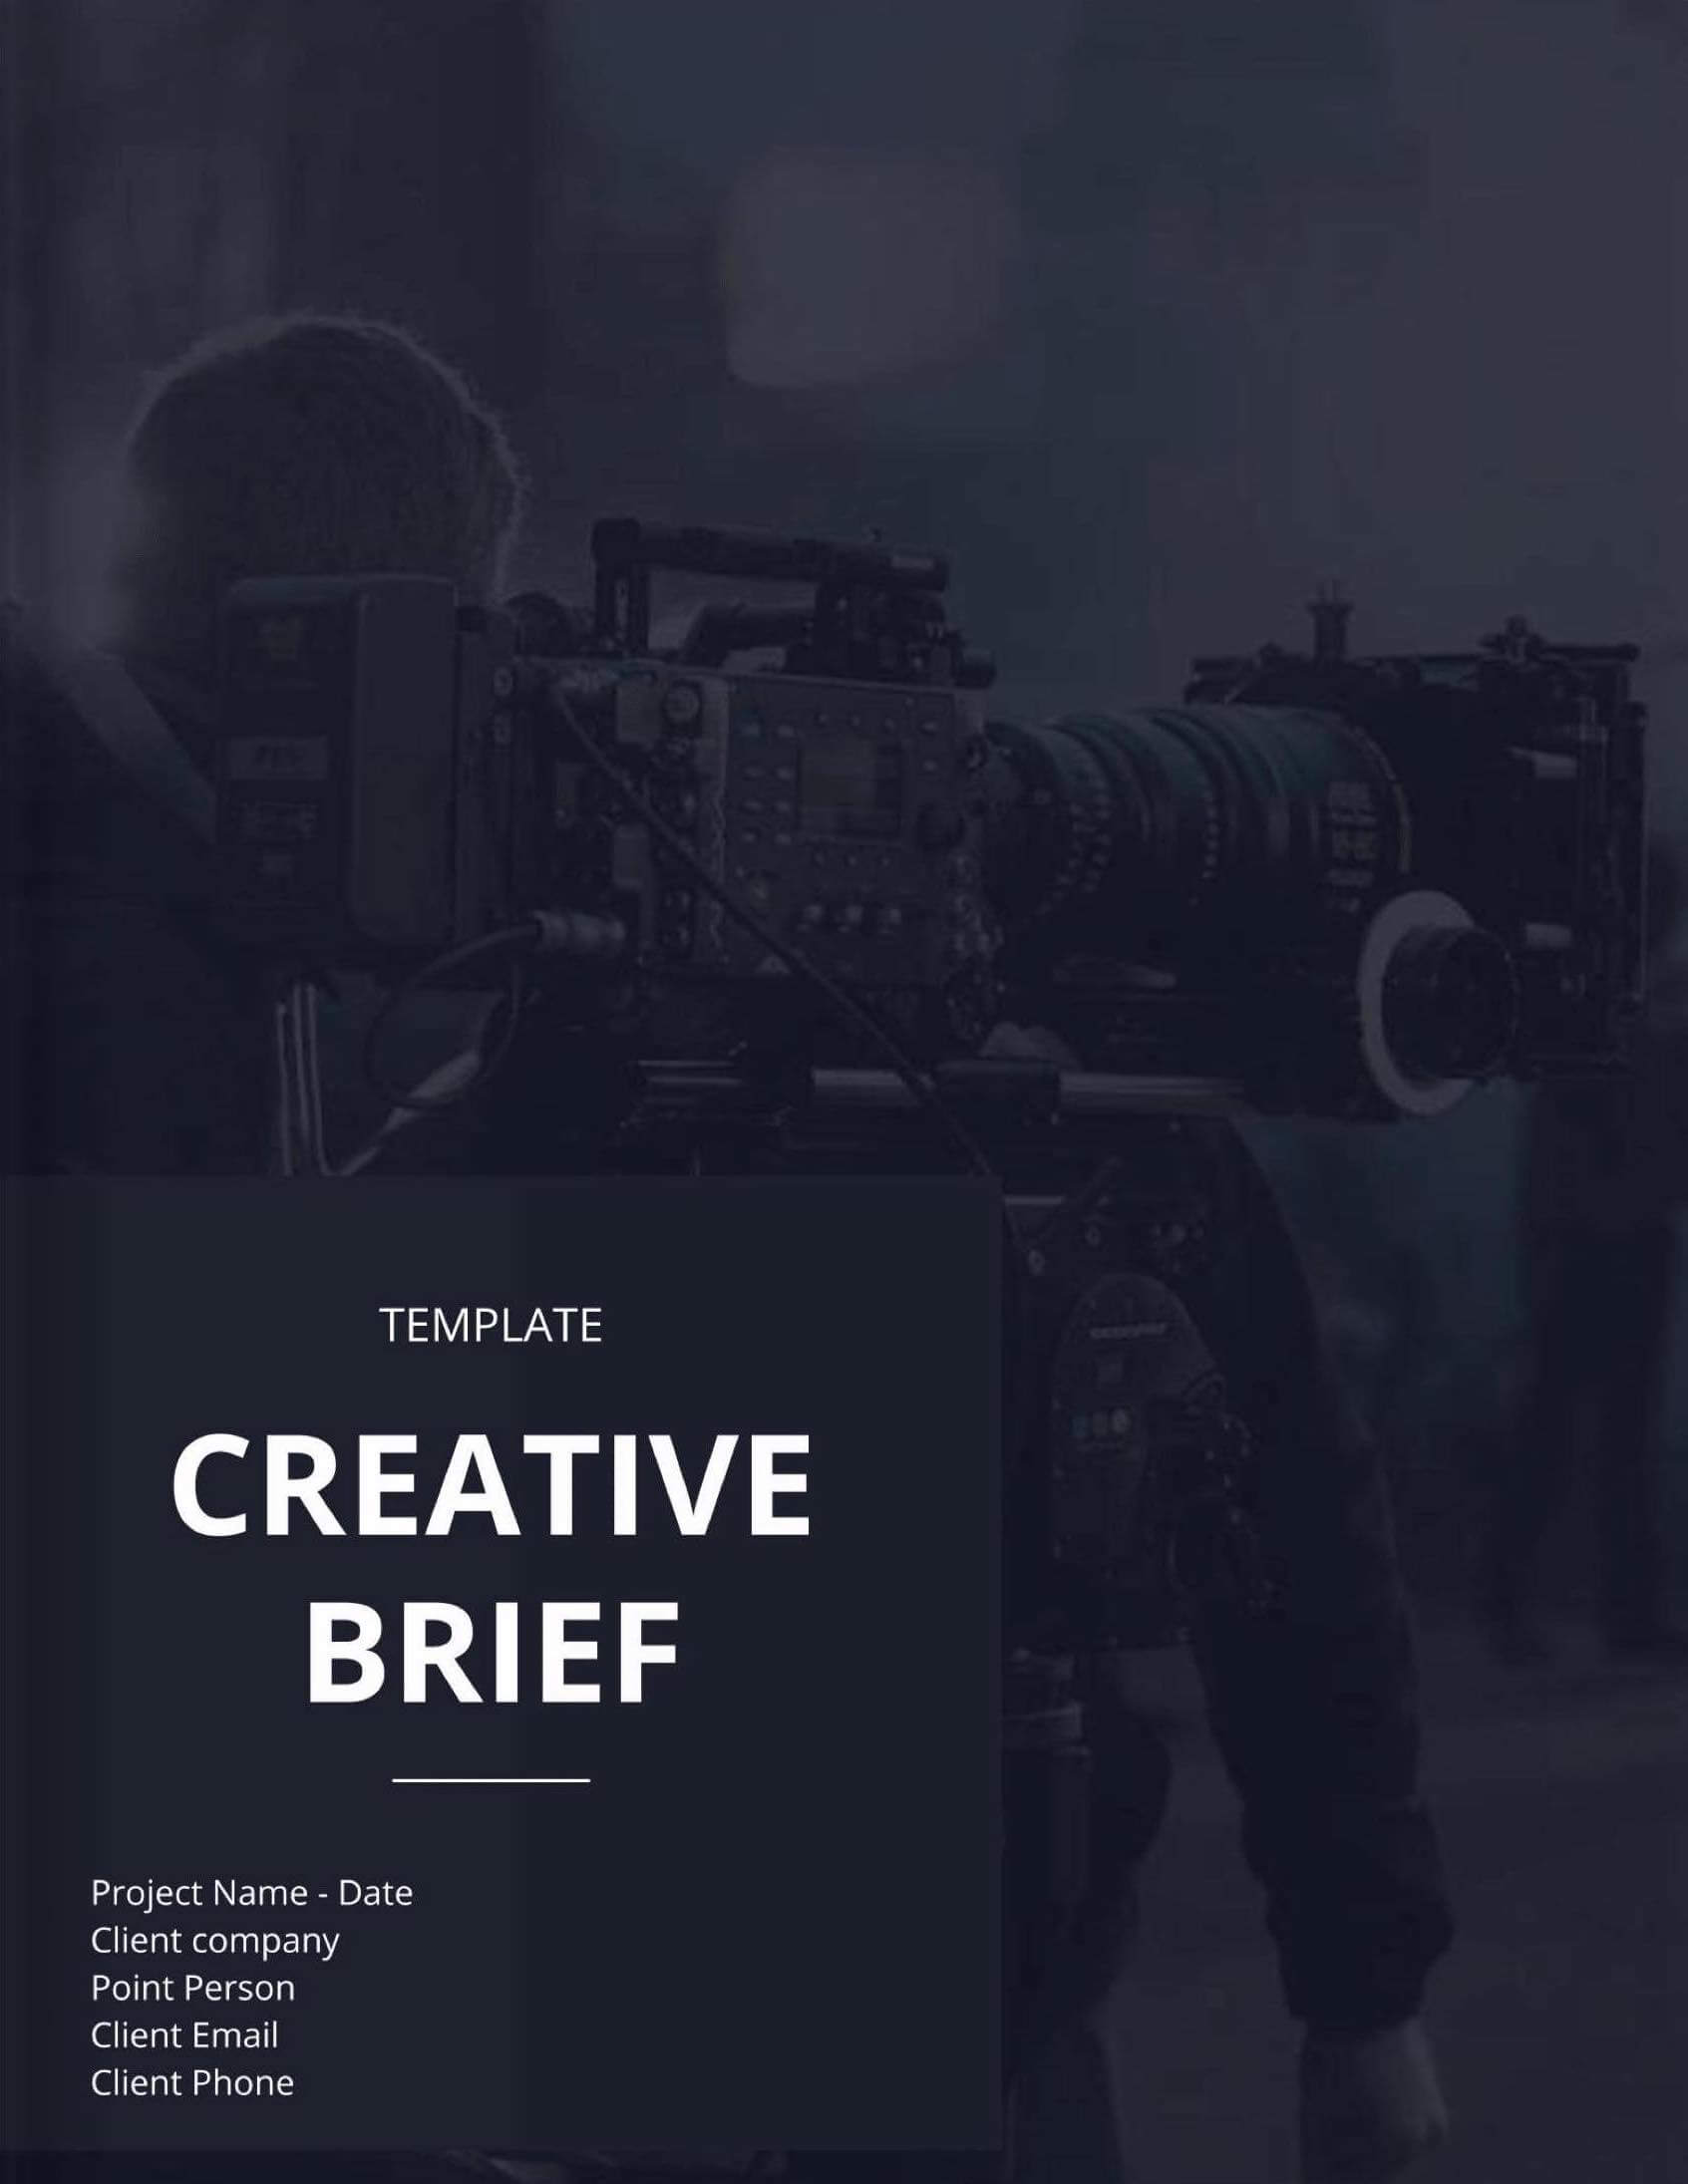 The-Best-Creative-Brief-Template-For-Video-Agencies-Free-Download-Cover Blog-StudioBinder